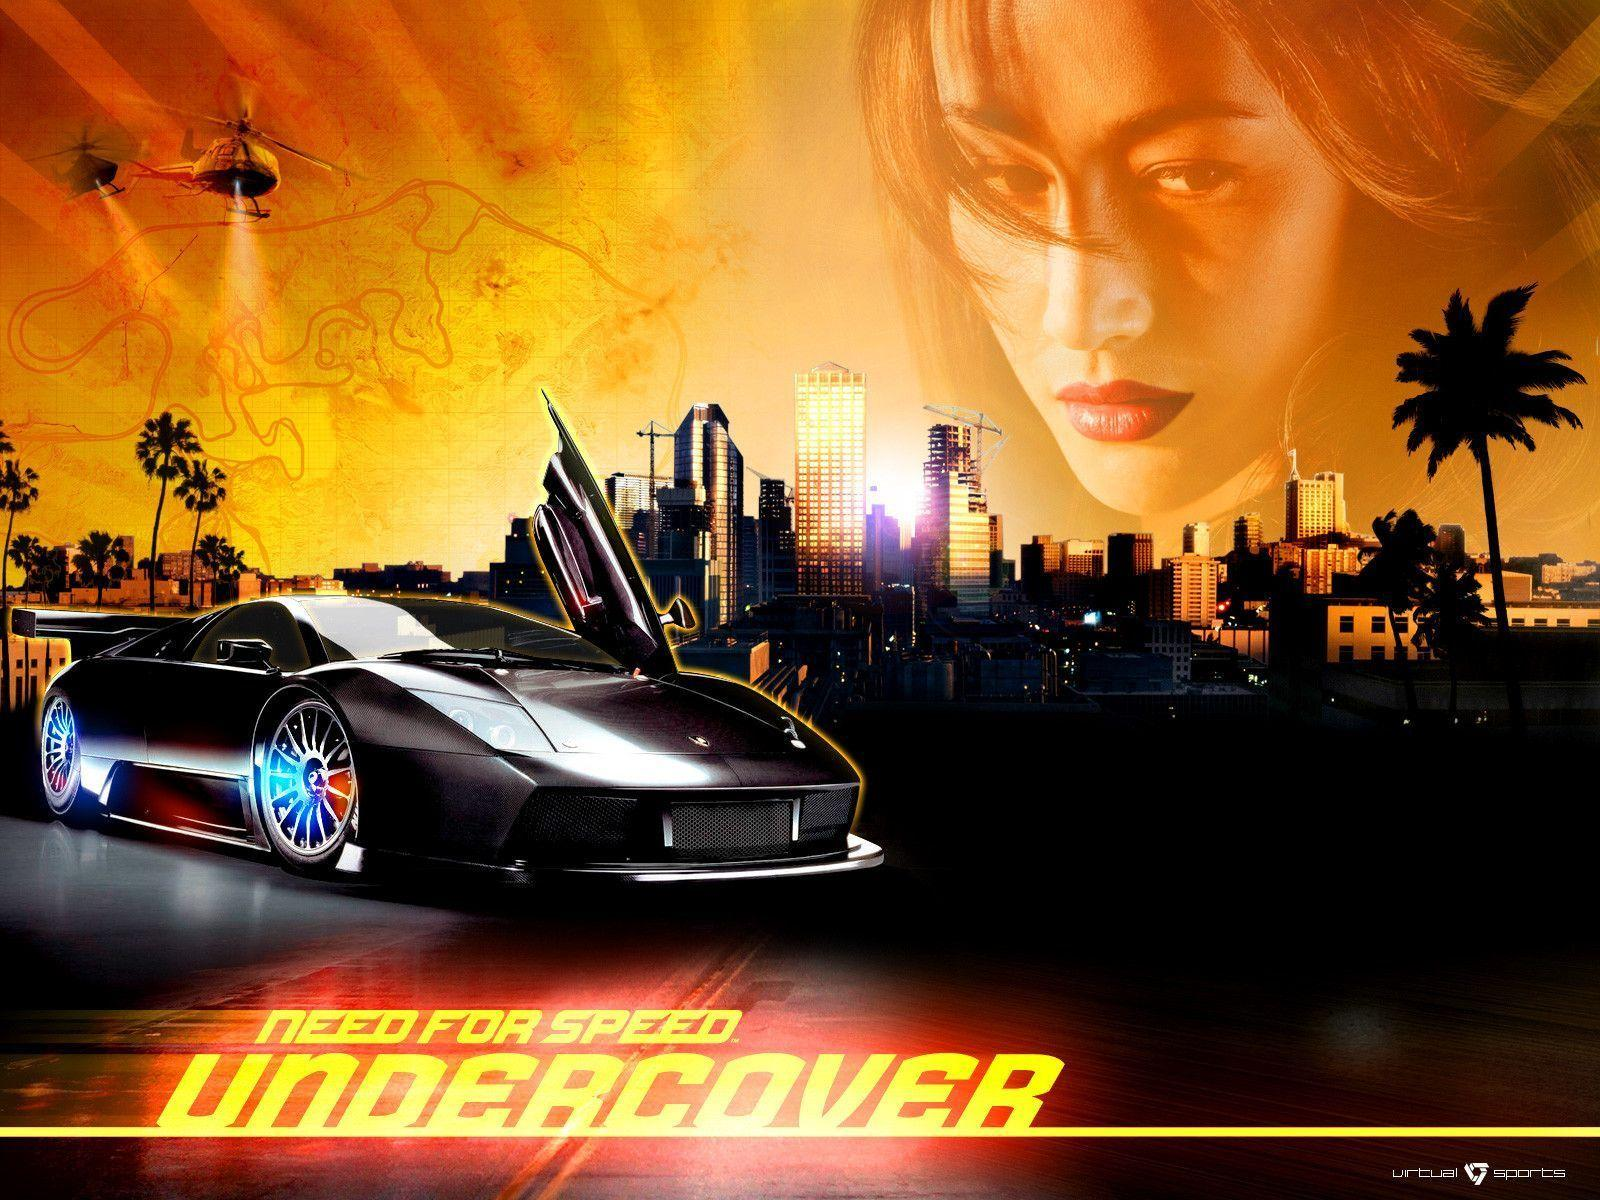 Nfs Most Wanted 2 Cars Wallpapers Nfs Wallpapers Wallpaper Cave